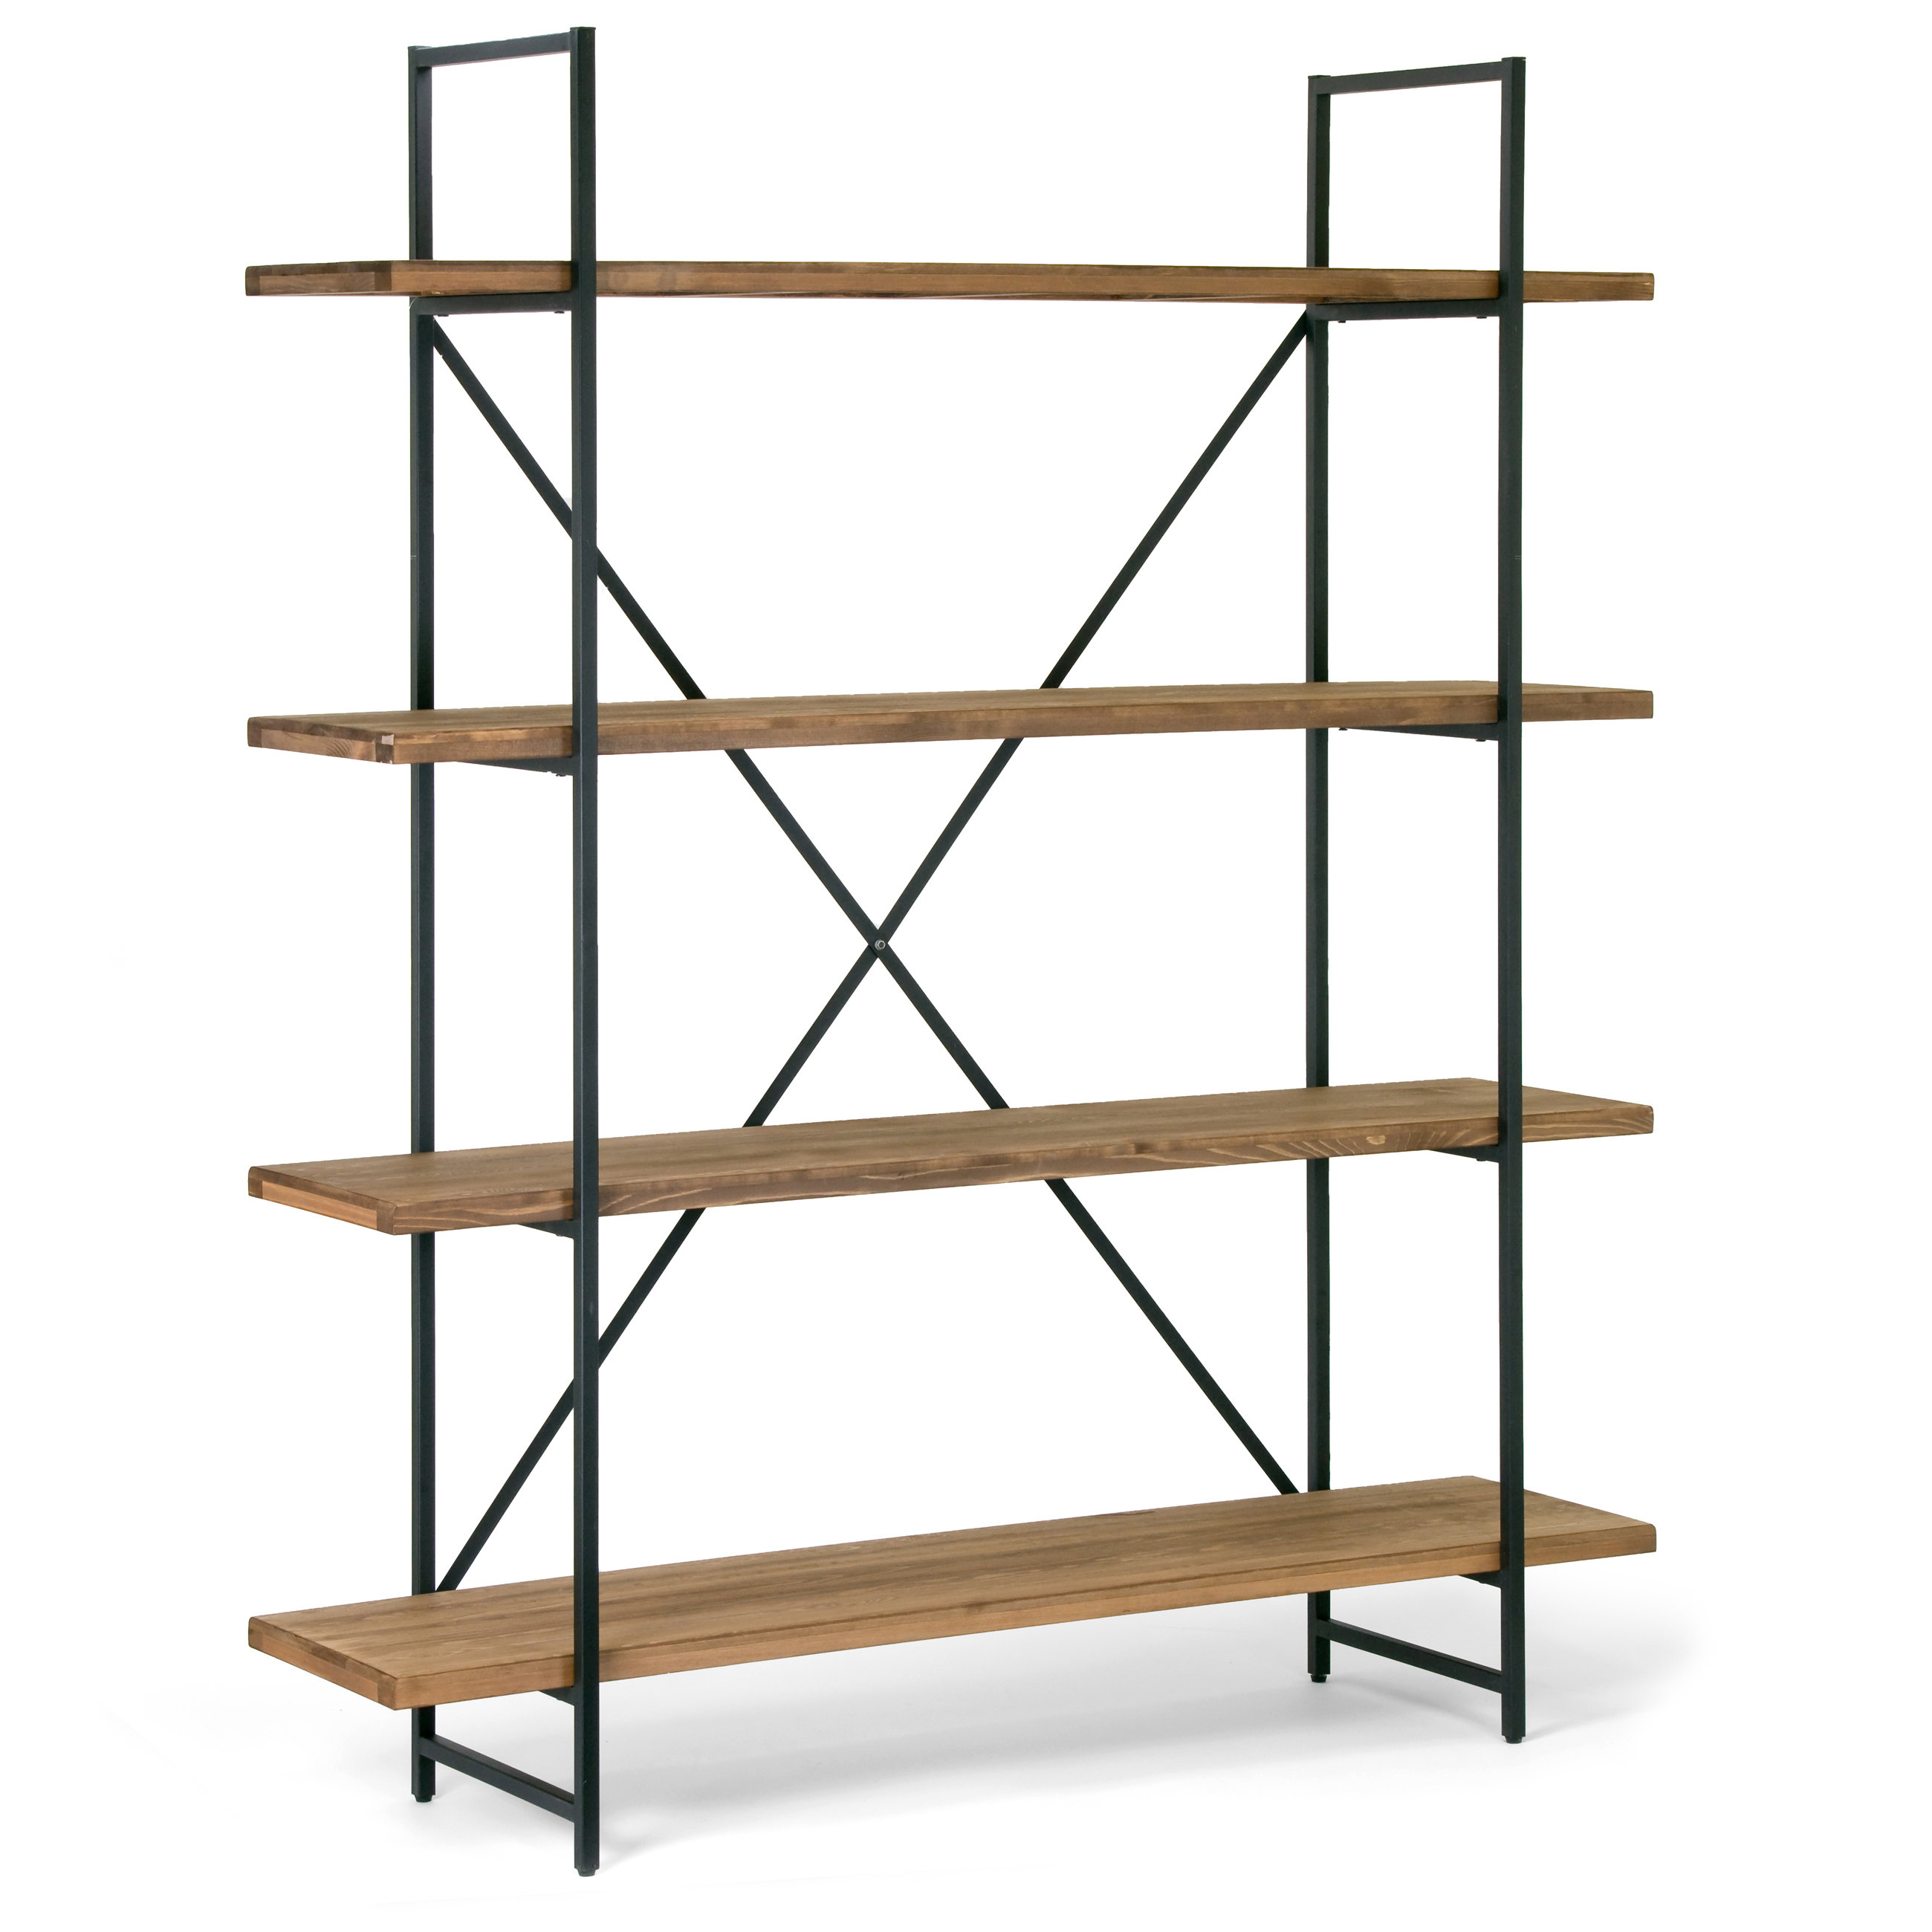 Champney Modern Etagere Bookcases With Favorite Champney Modern Etagere Bookcase & Reviews (Gallery 3 of 20)